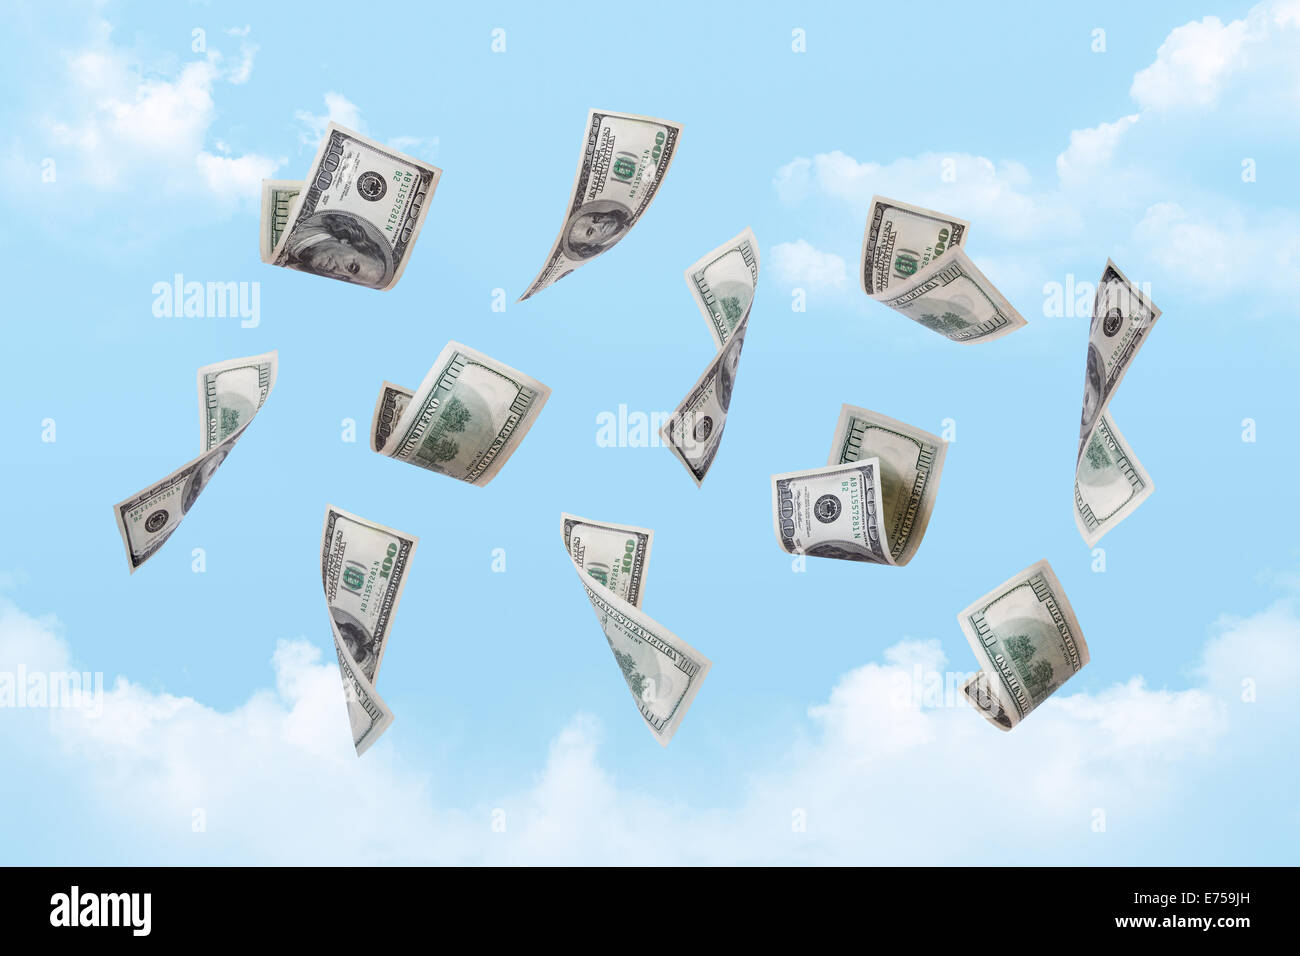 Dollar banknotes falling down on cloudy sky background. - Stock Image